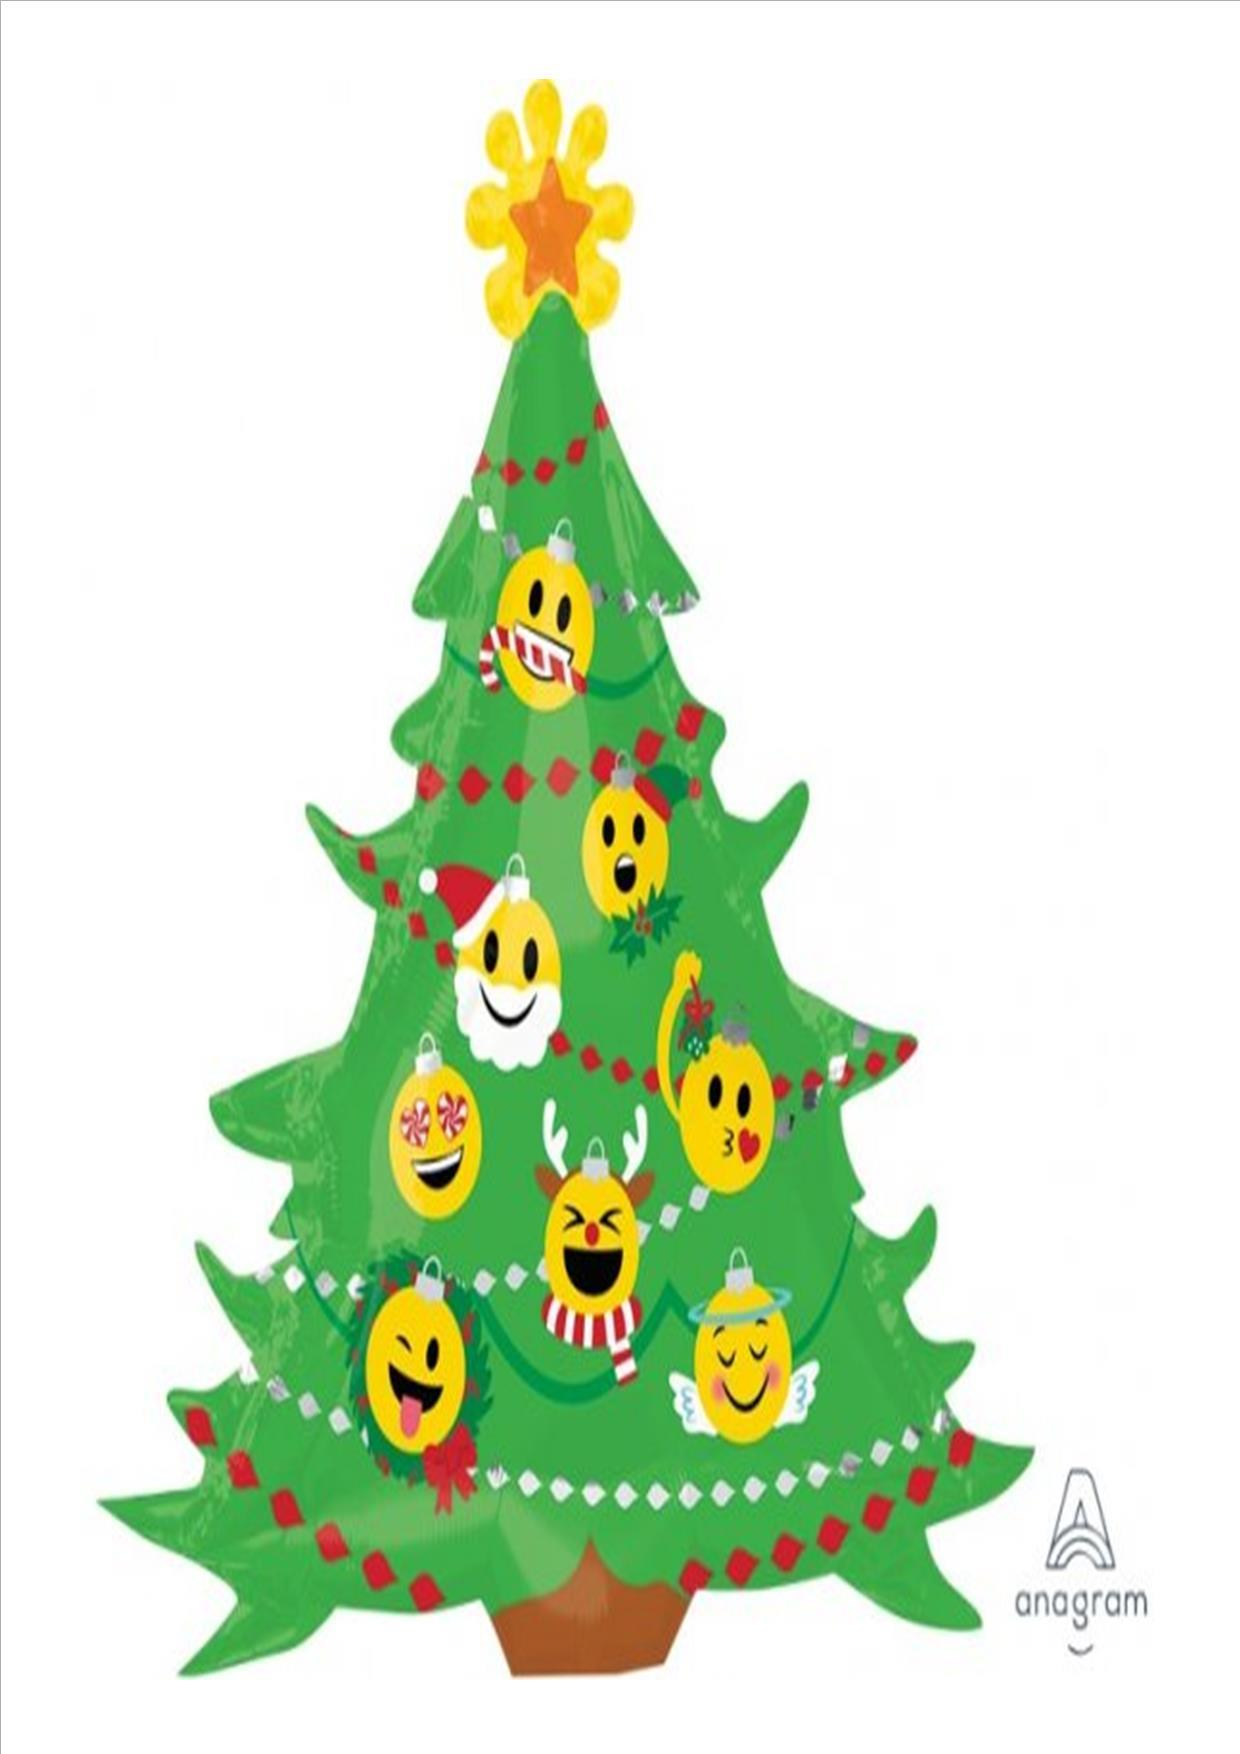 Christmas Tree Balloon.Emoji Christmas Tree Balloon